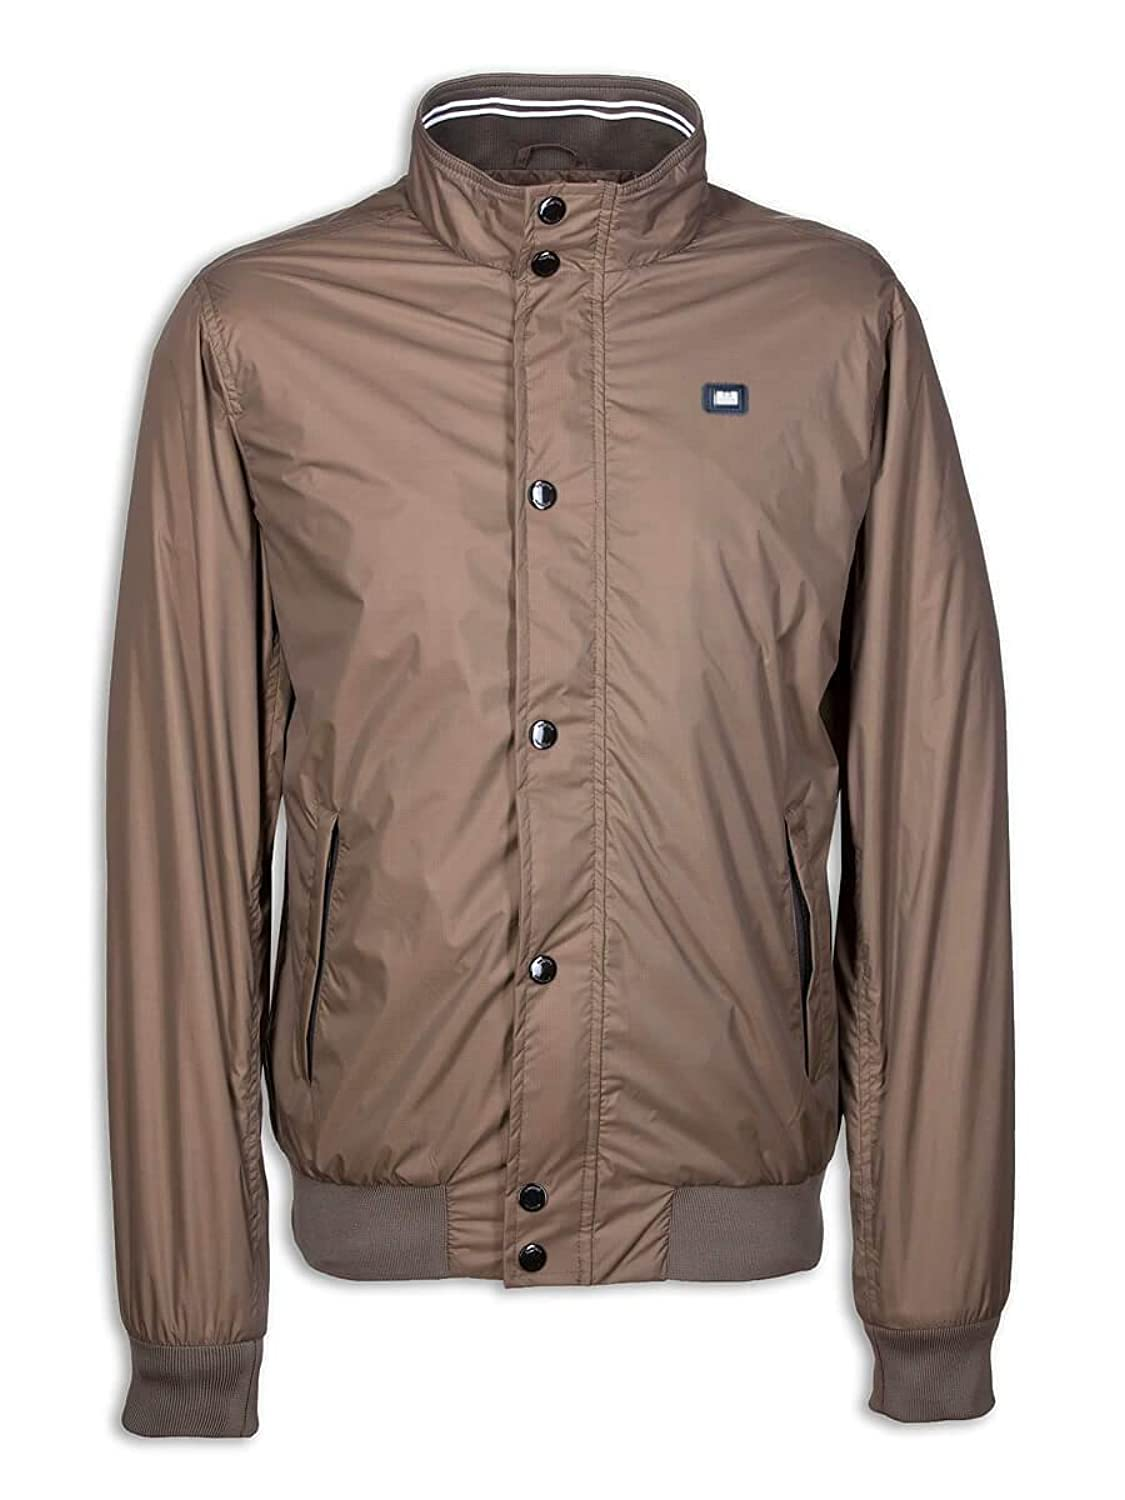 Weekend Offender Men's Roe Jacket Pickle